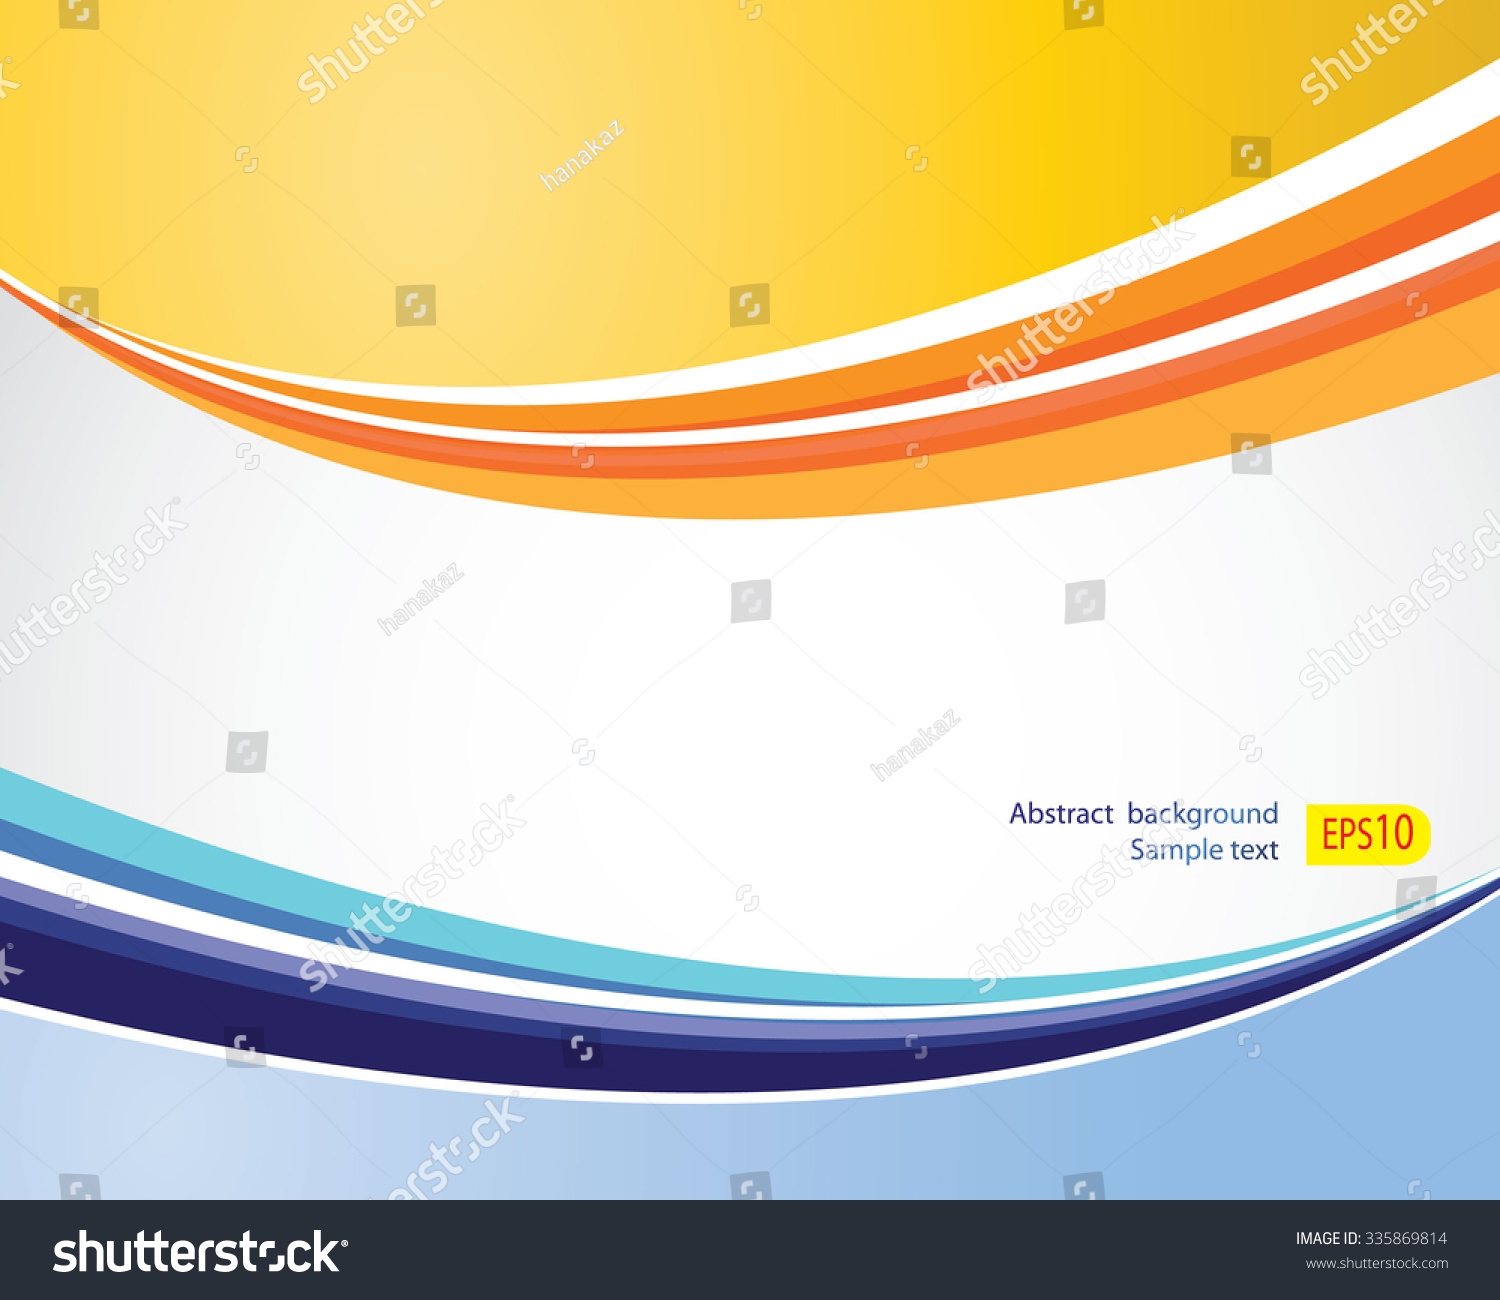 200+ Blue and Orange Backgrounds Vectors | Download Free ... |Orange And Blue Vector Background